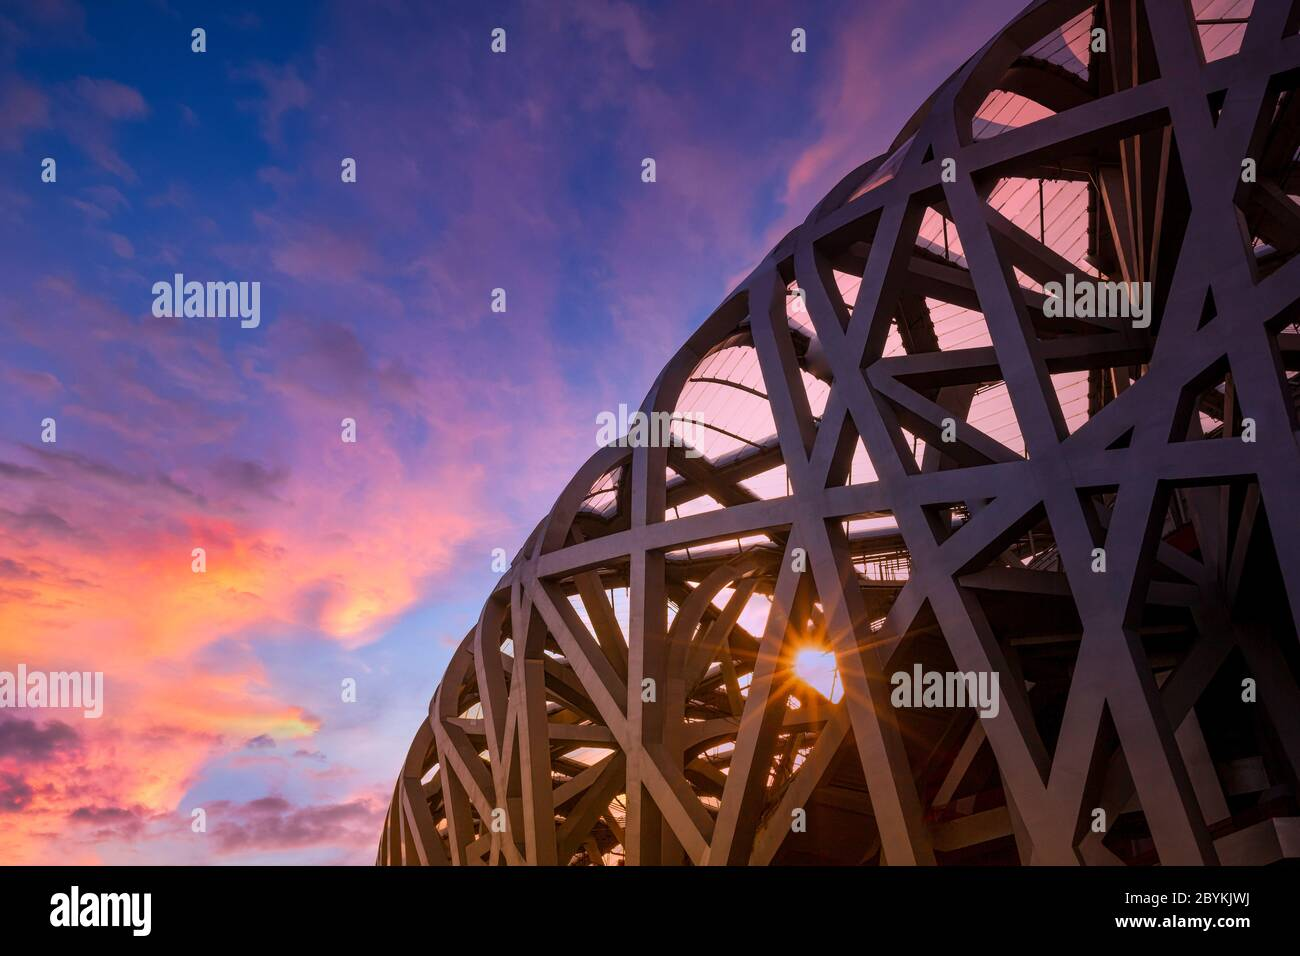 Beijing, Chaoyang District :   The Bird Nest Stadium located in The Olympic Green - an Olympic Park in Chaoyang. Stock Photo